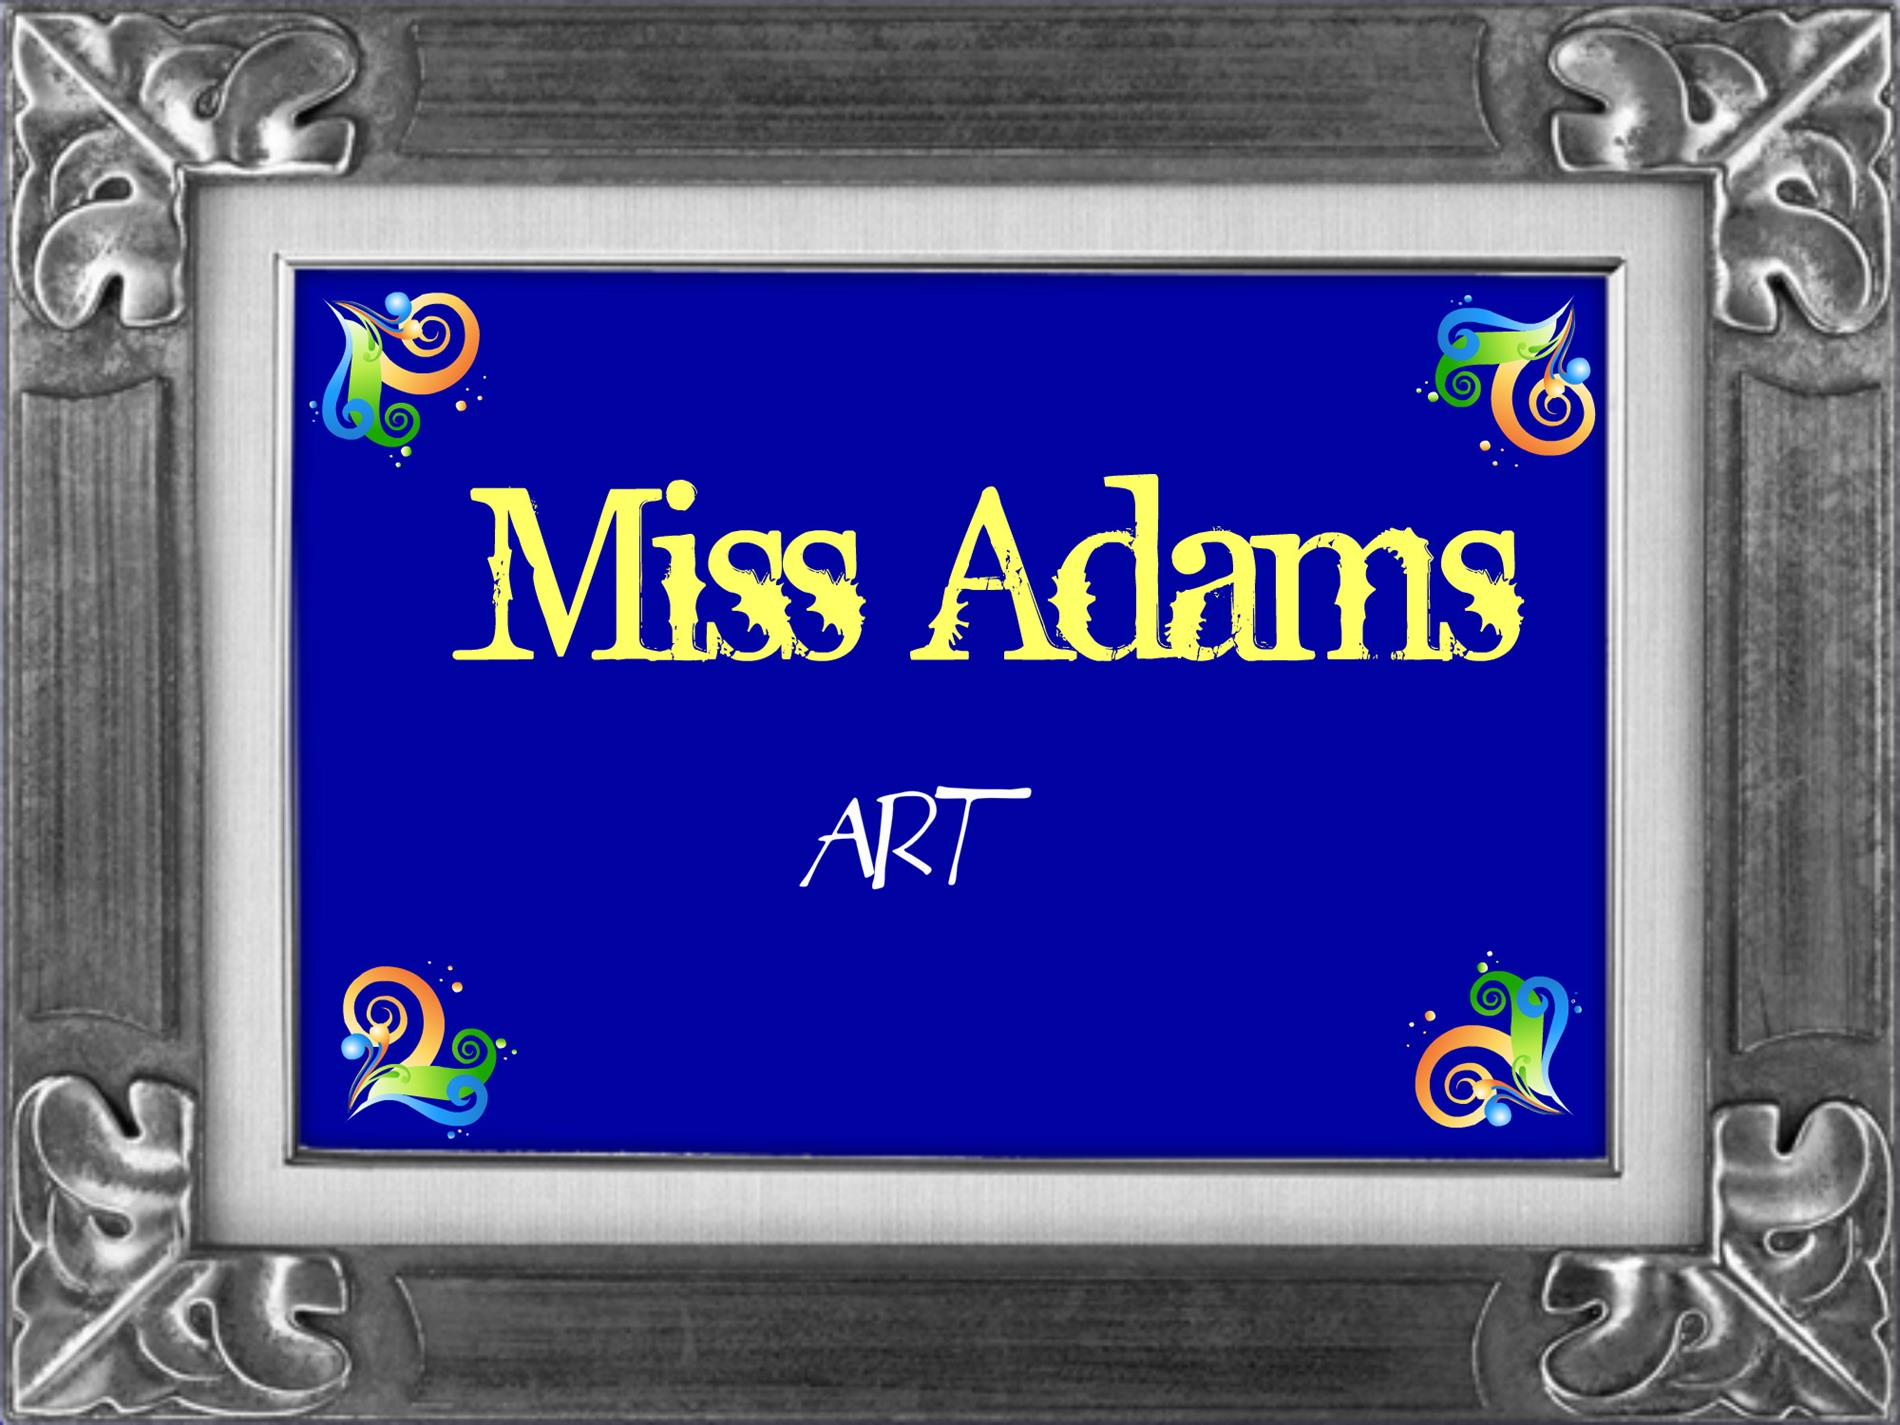 Link to Miss Adams' Teacher Page